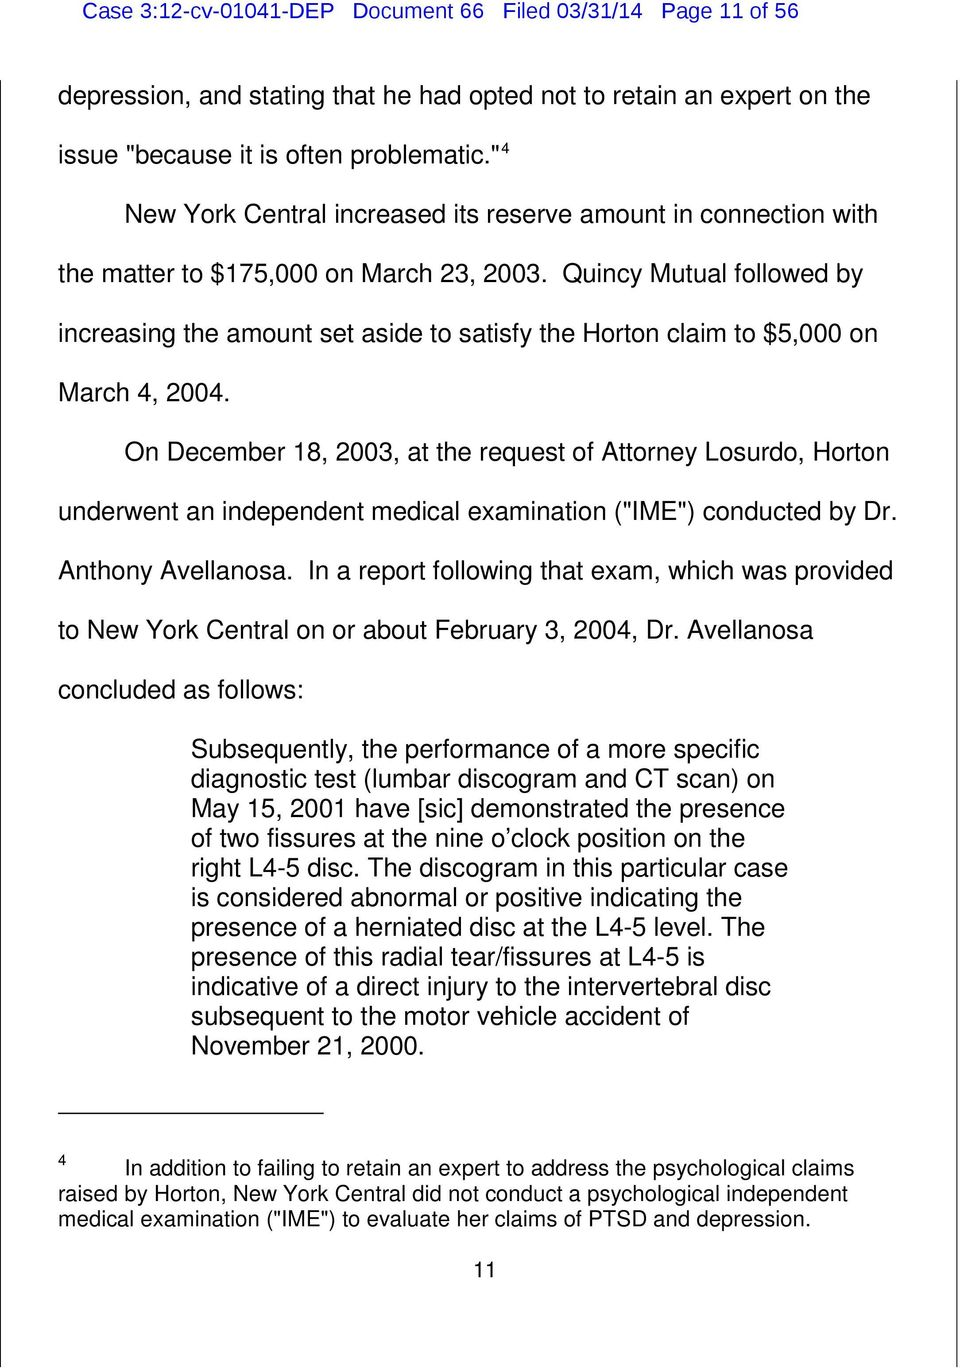 Quincy Mutual followed by increasing the amount set aside to satisfy the Horton claim to $5,000 on March 4, 2004.